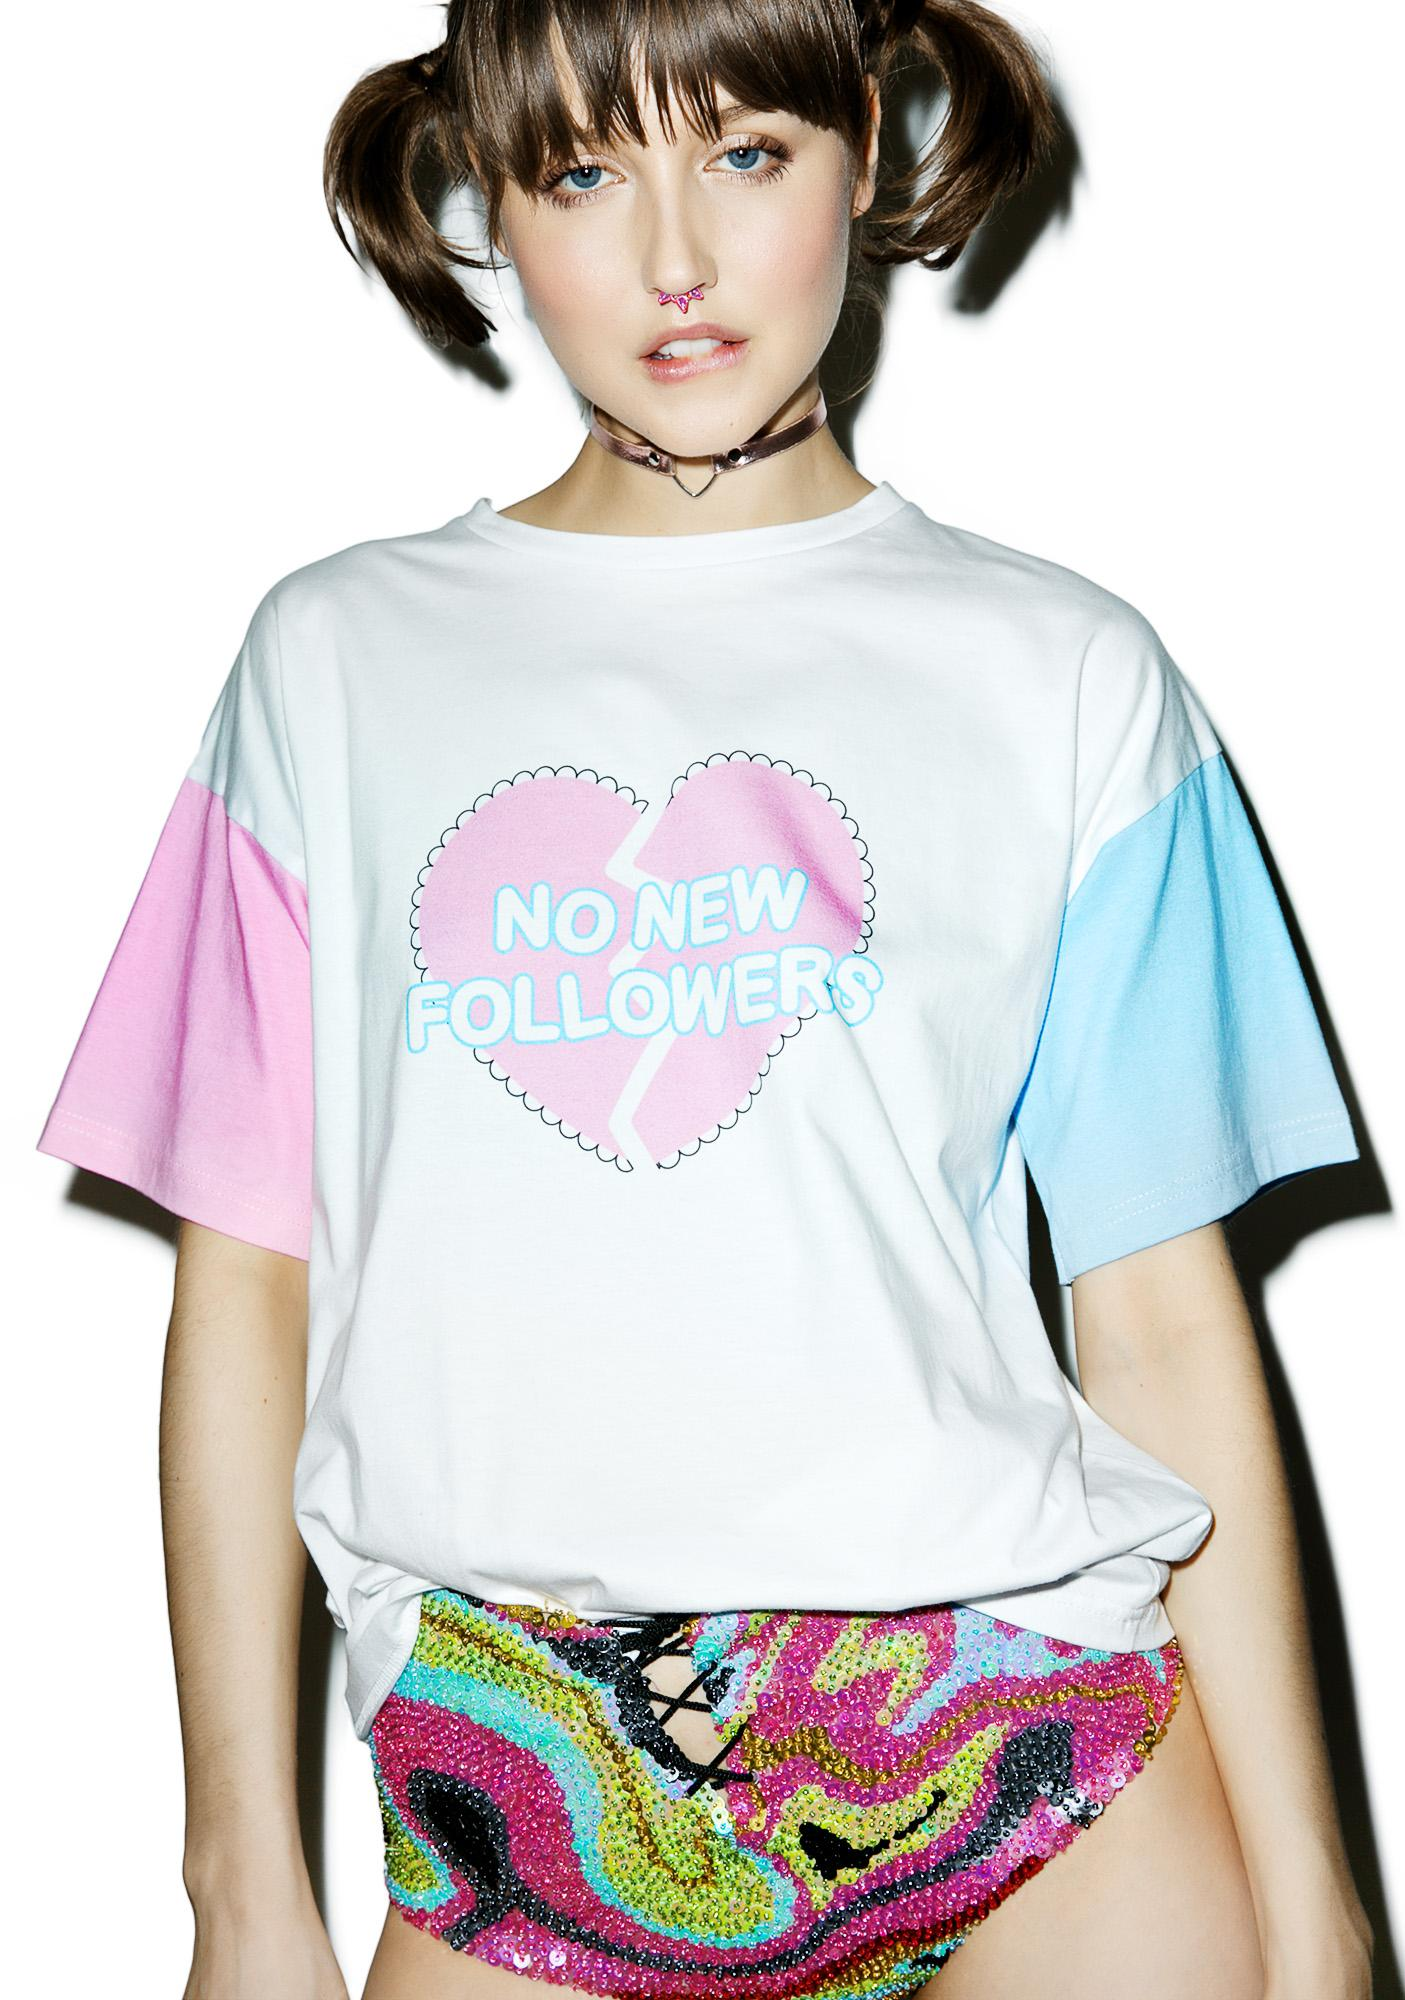 Sugarpills Followers T-Shirt